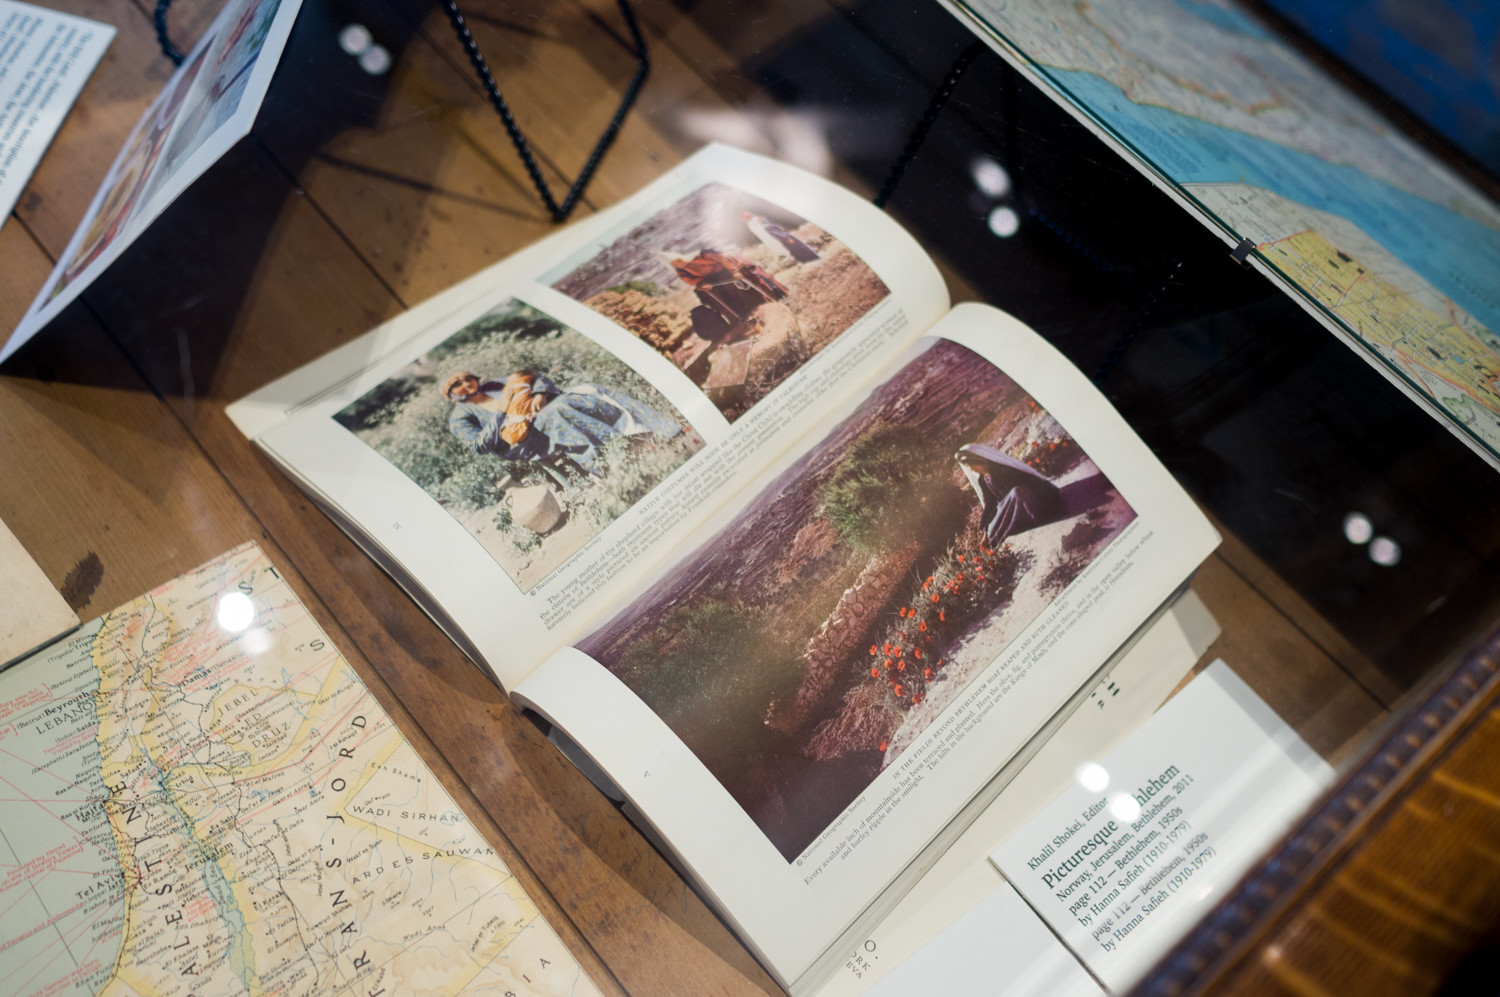 A 1929 issue of National Geographic features color photographs of Bethlehem in Palestine. It is part of a traveling exhibition called 'Bethlehem Beyond the Wall' at Manhattan College.